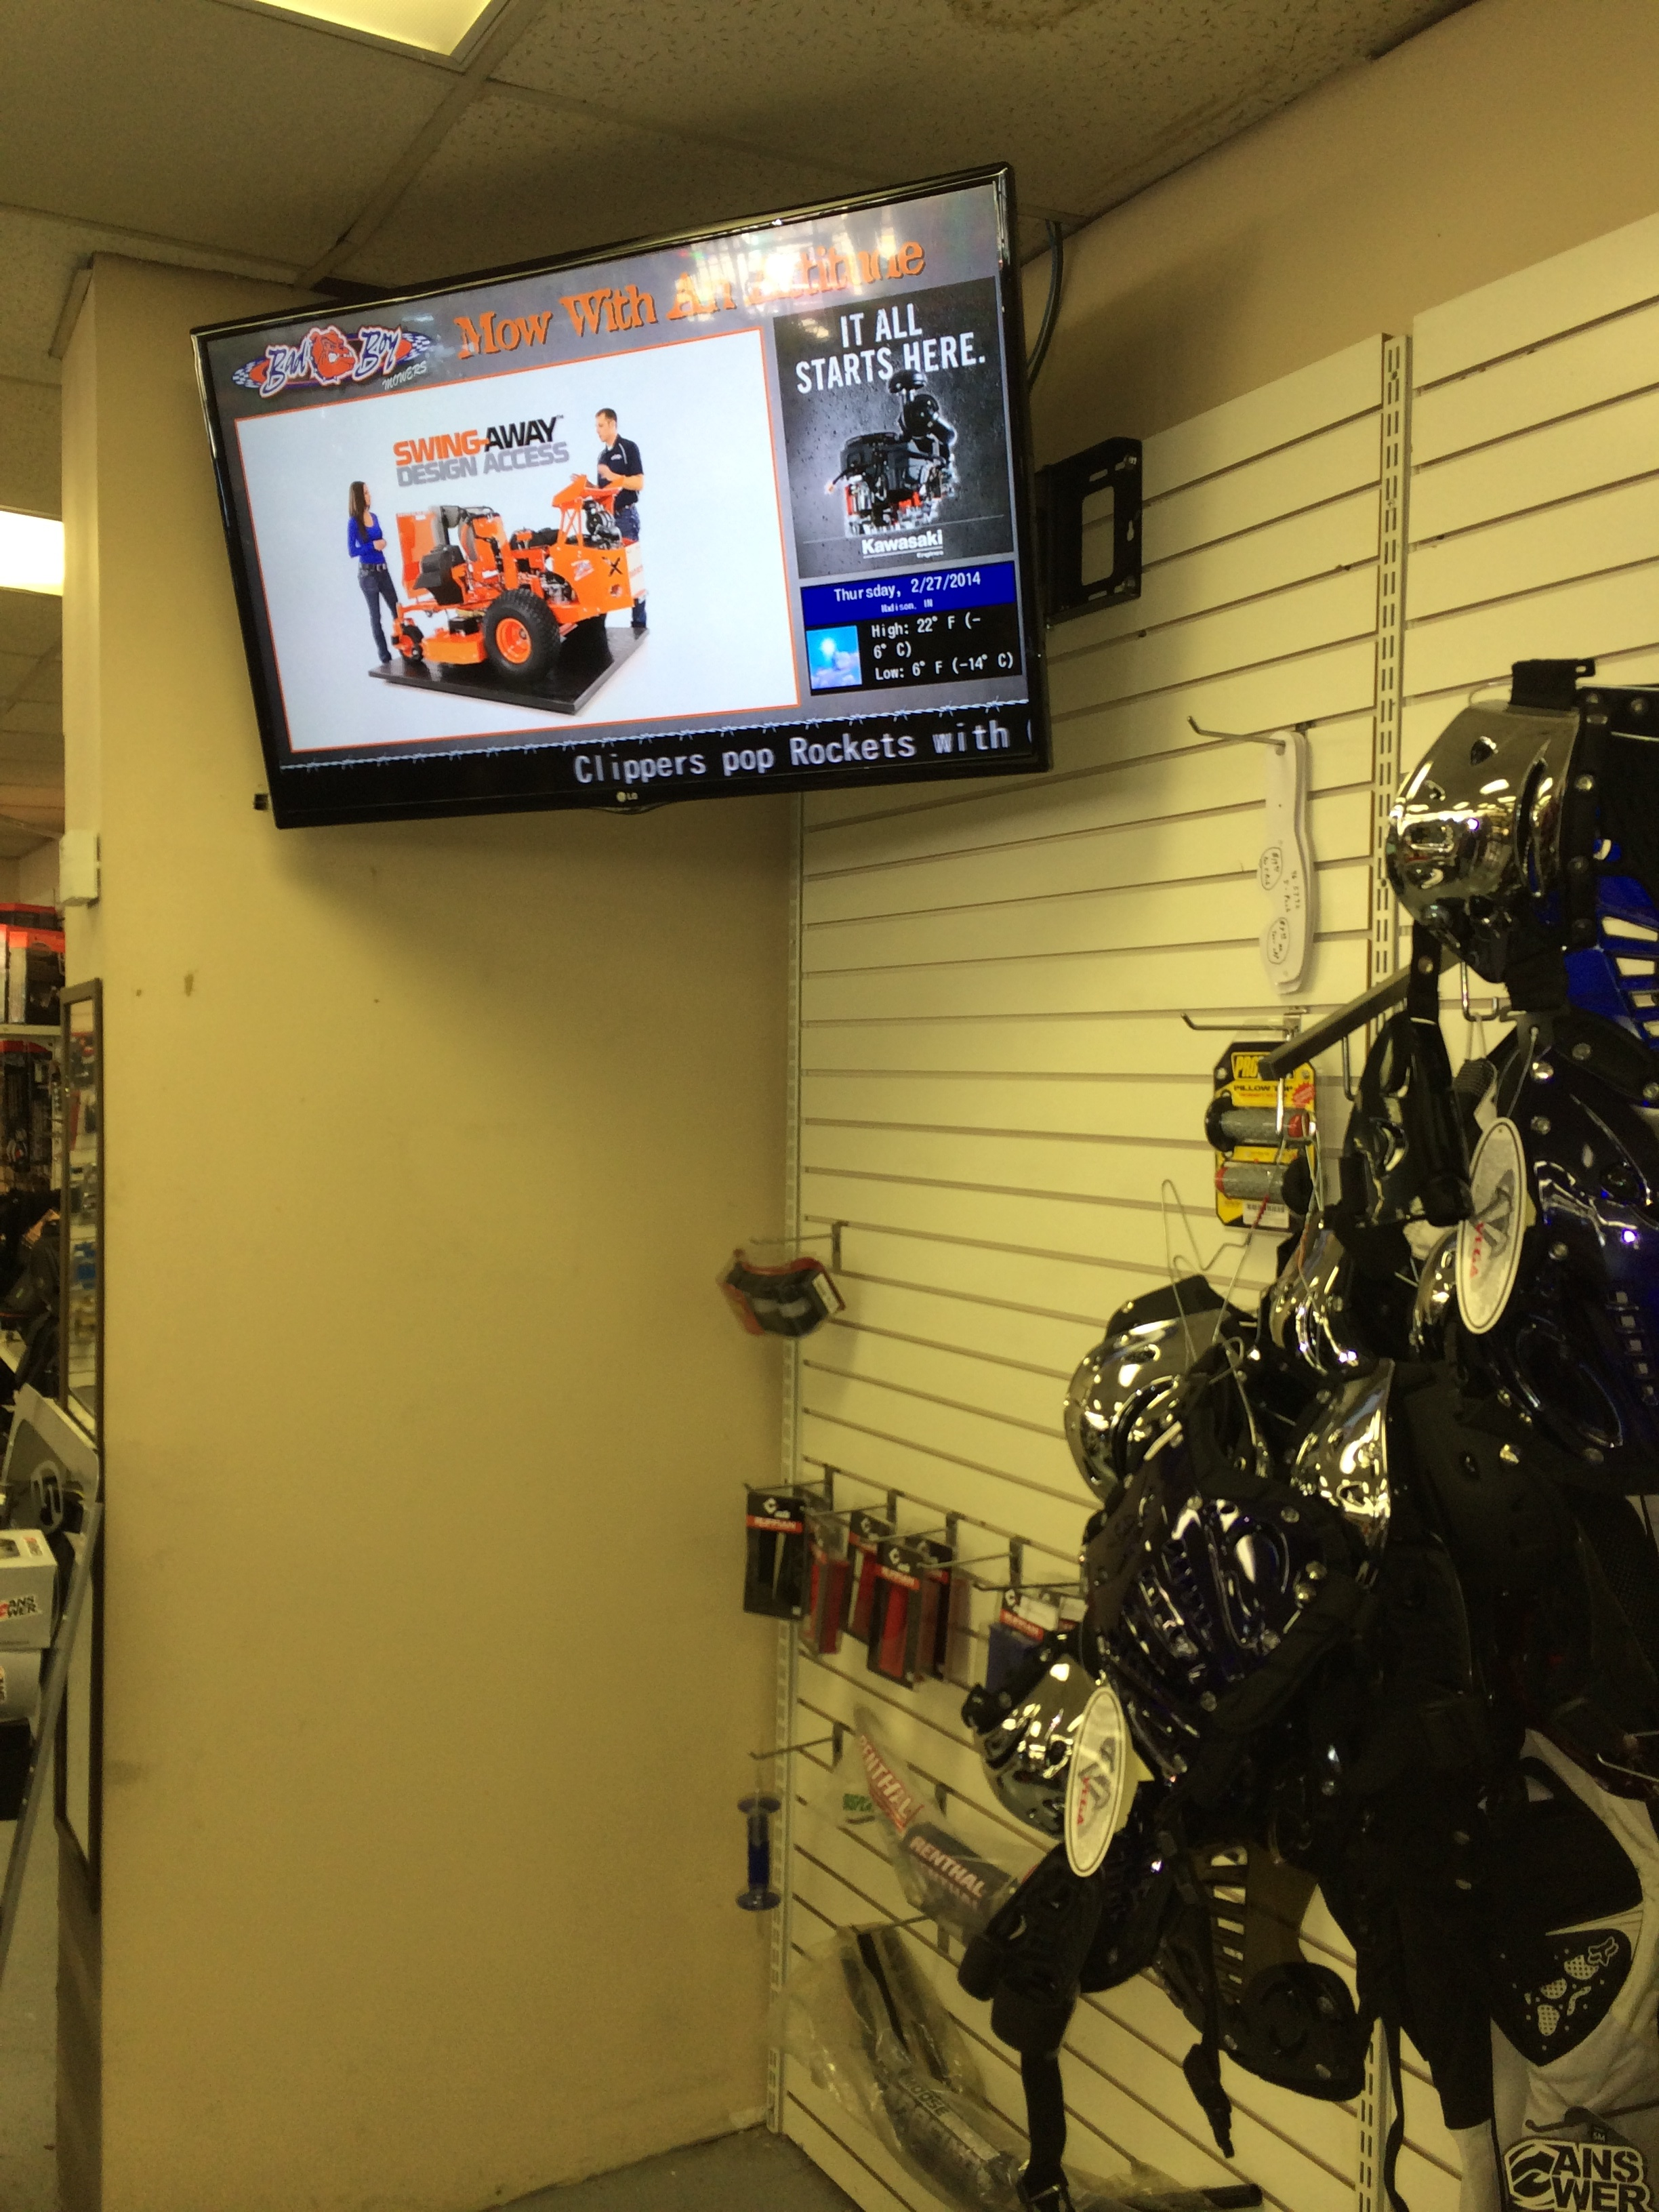 Digital Signage  (Client - Hanover, IN) - Promote your brand globally with a consistent message.